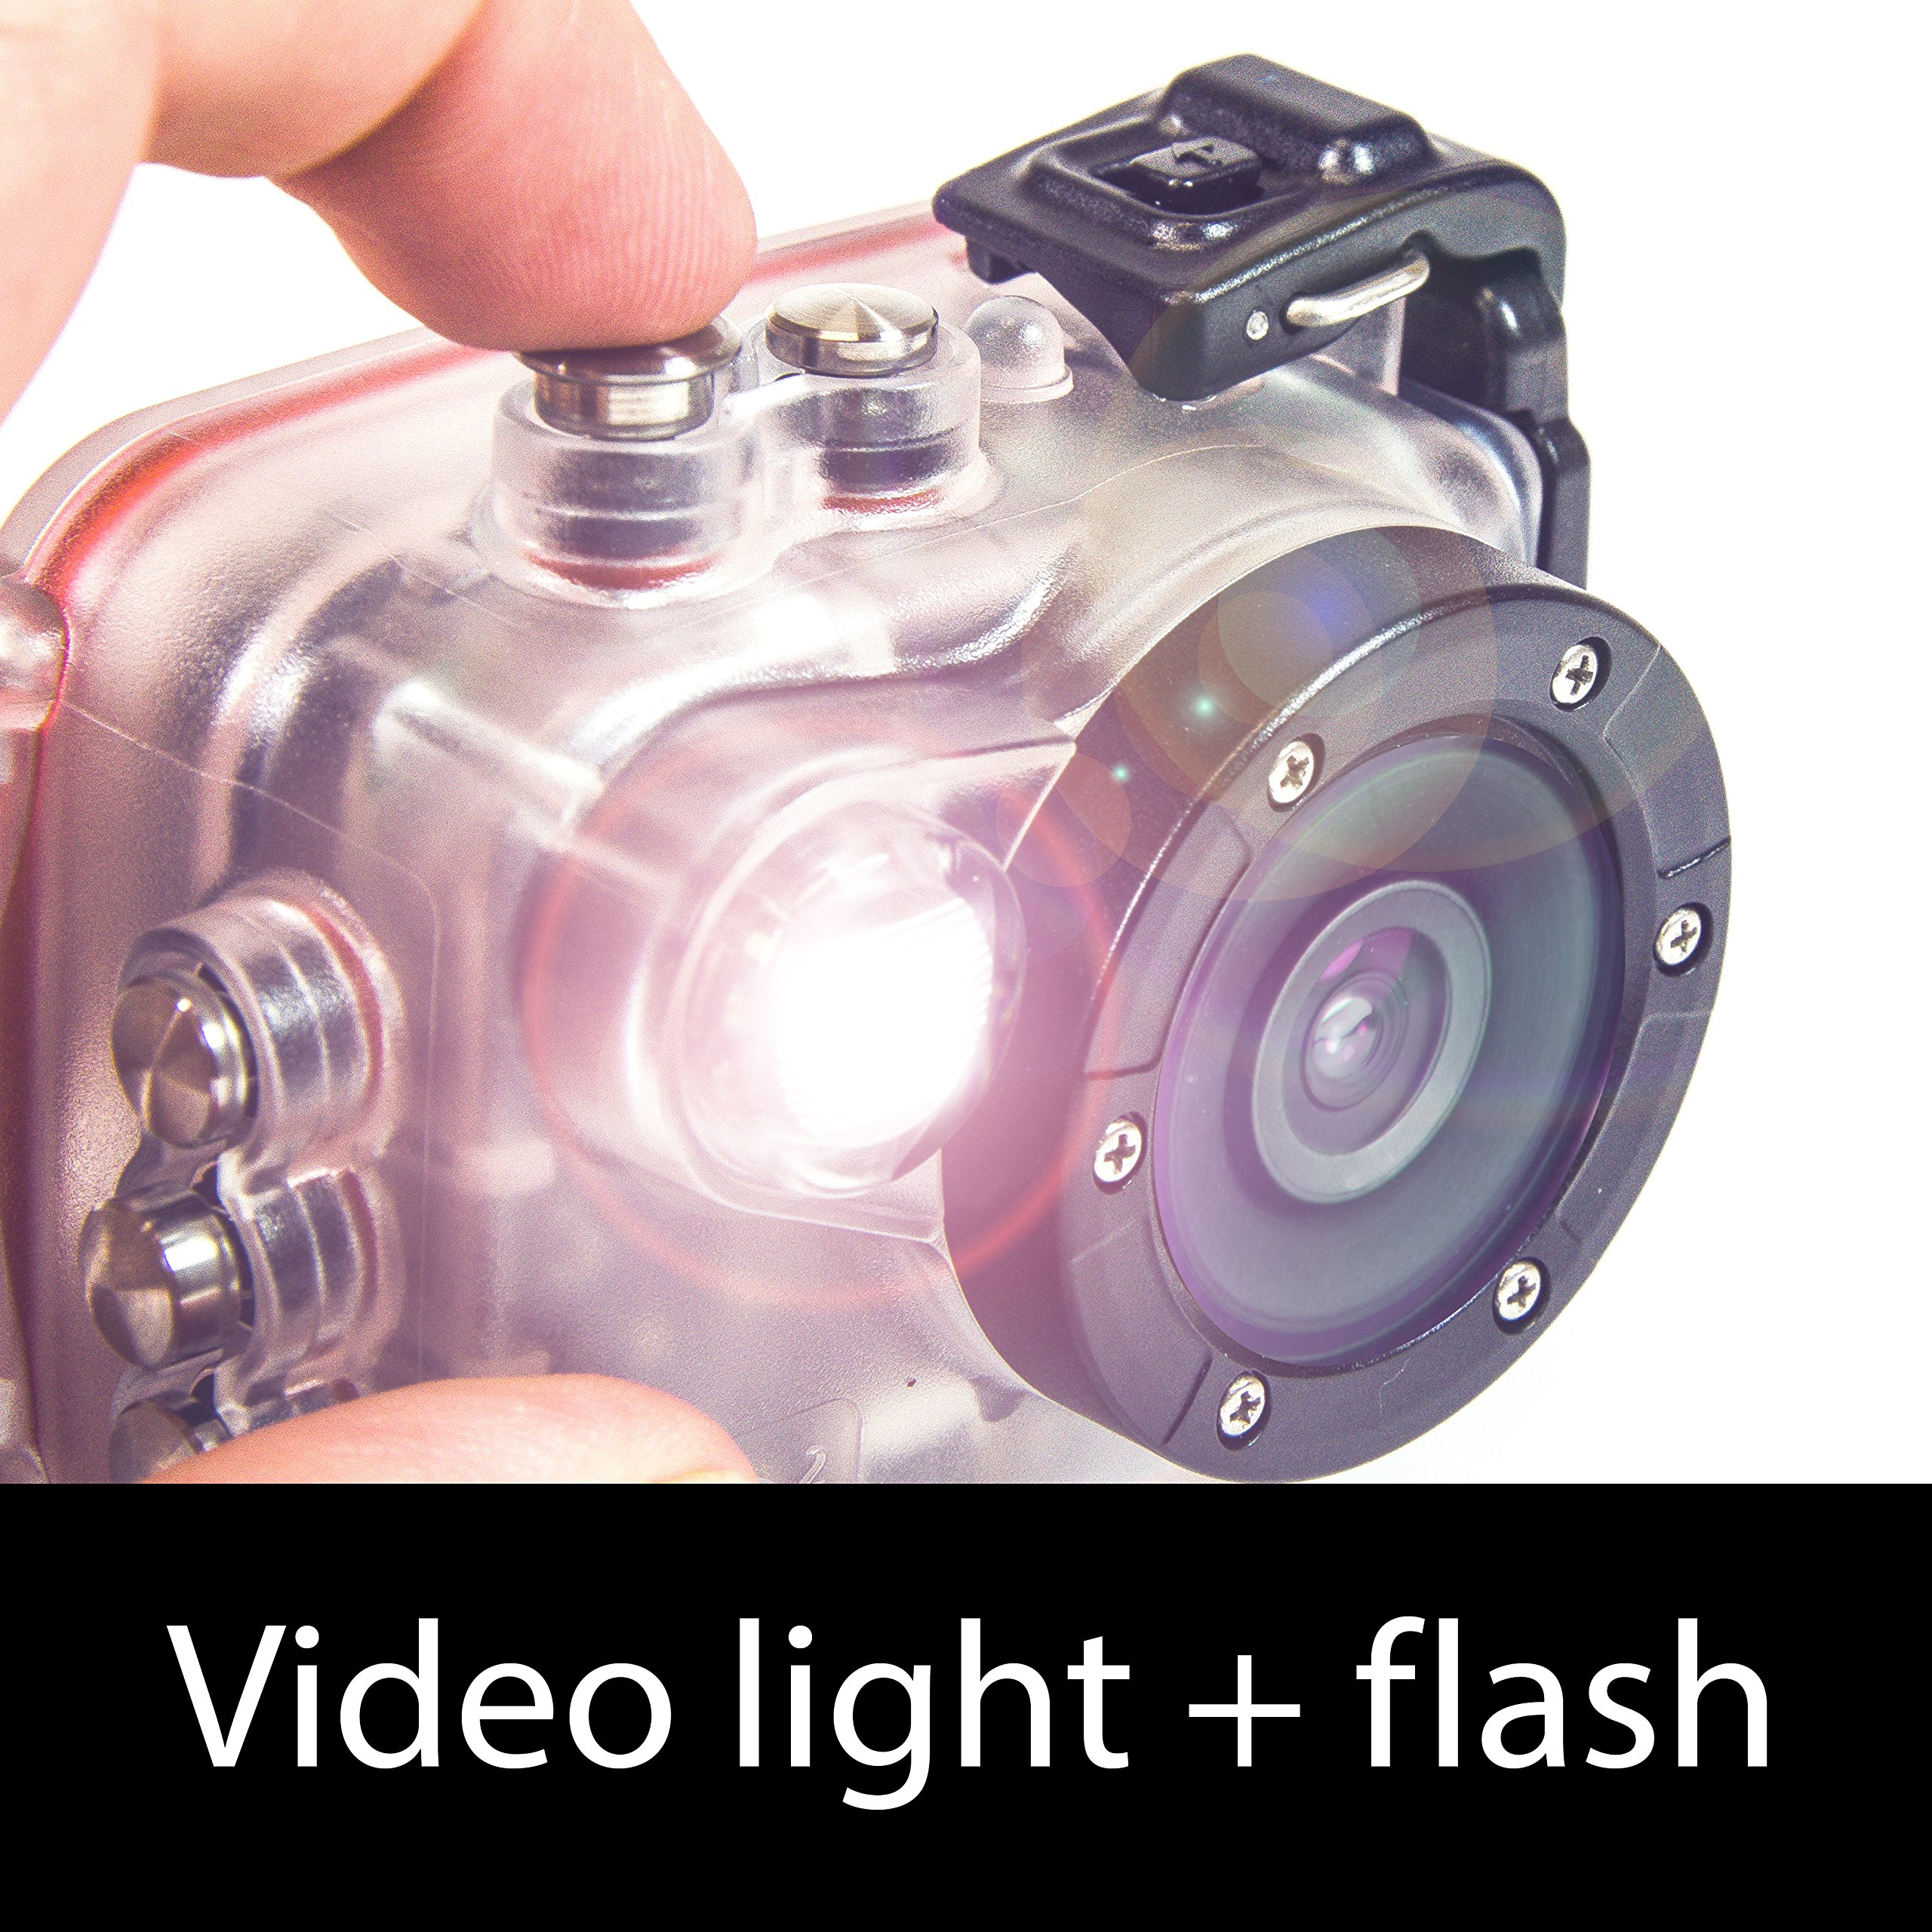 Intova HD2 Waterproof 8MP Action Camera with Built-in 150-Lumen Light and Remote Control by Intova (Image #4)